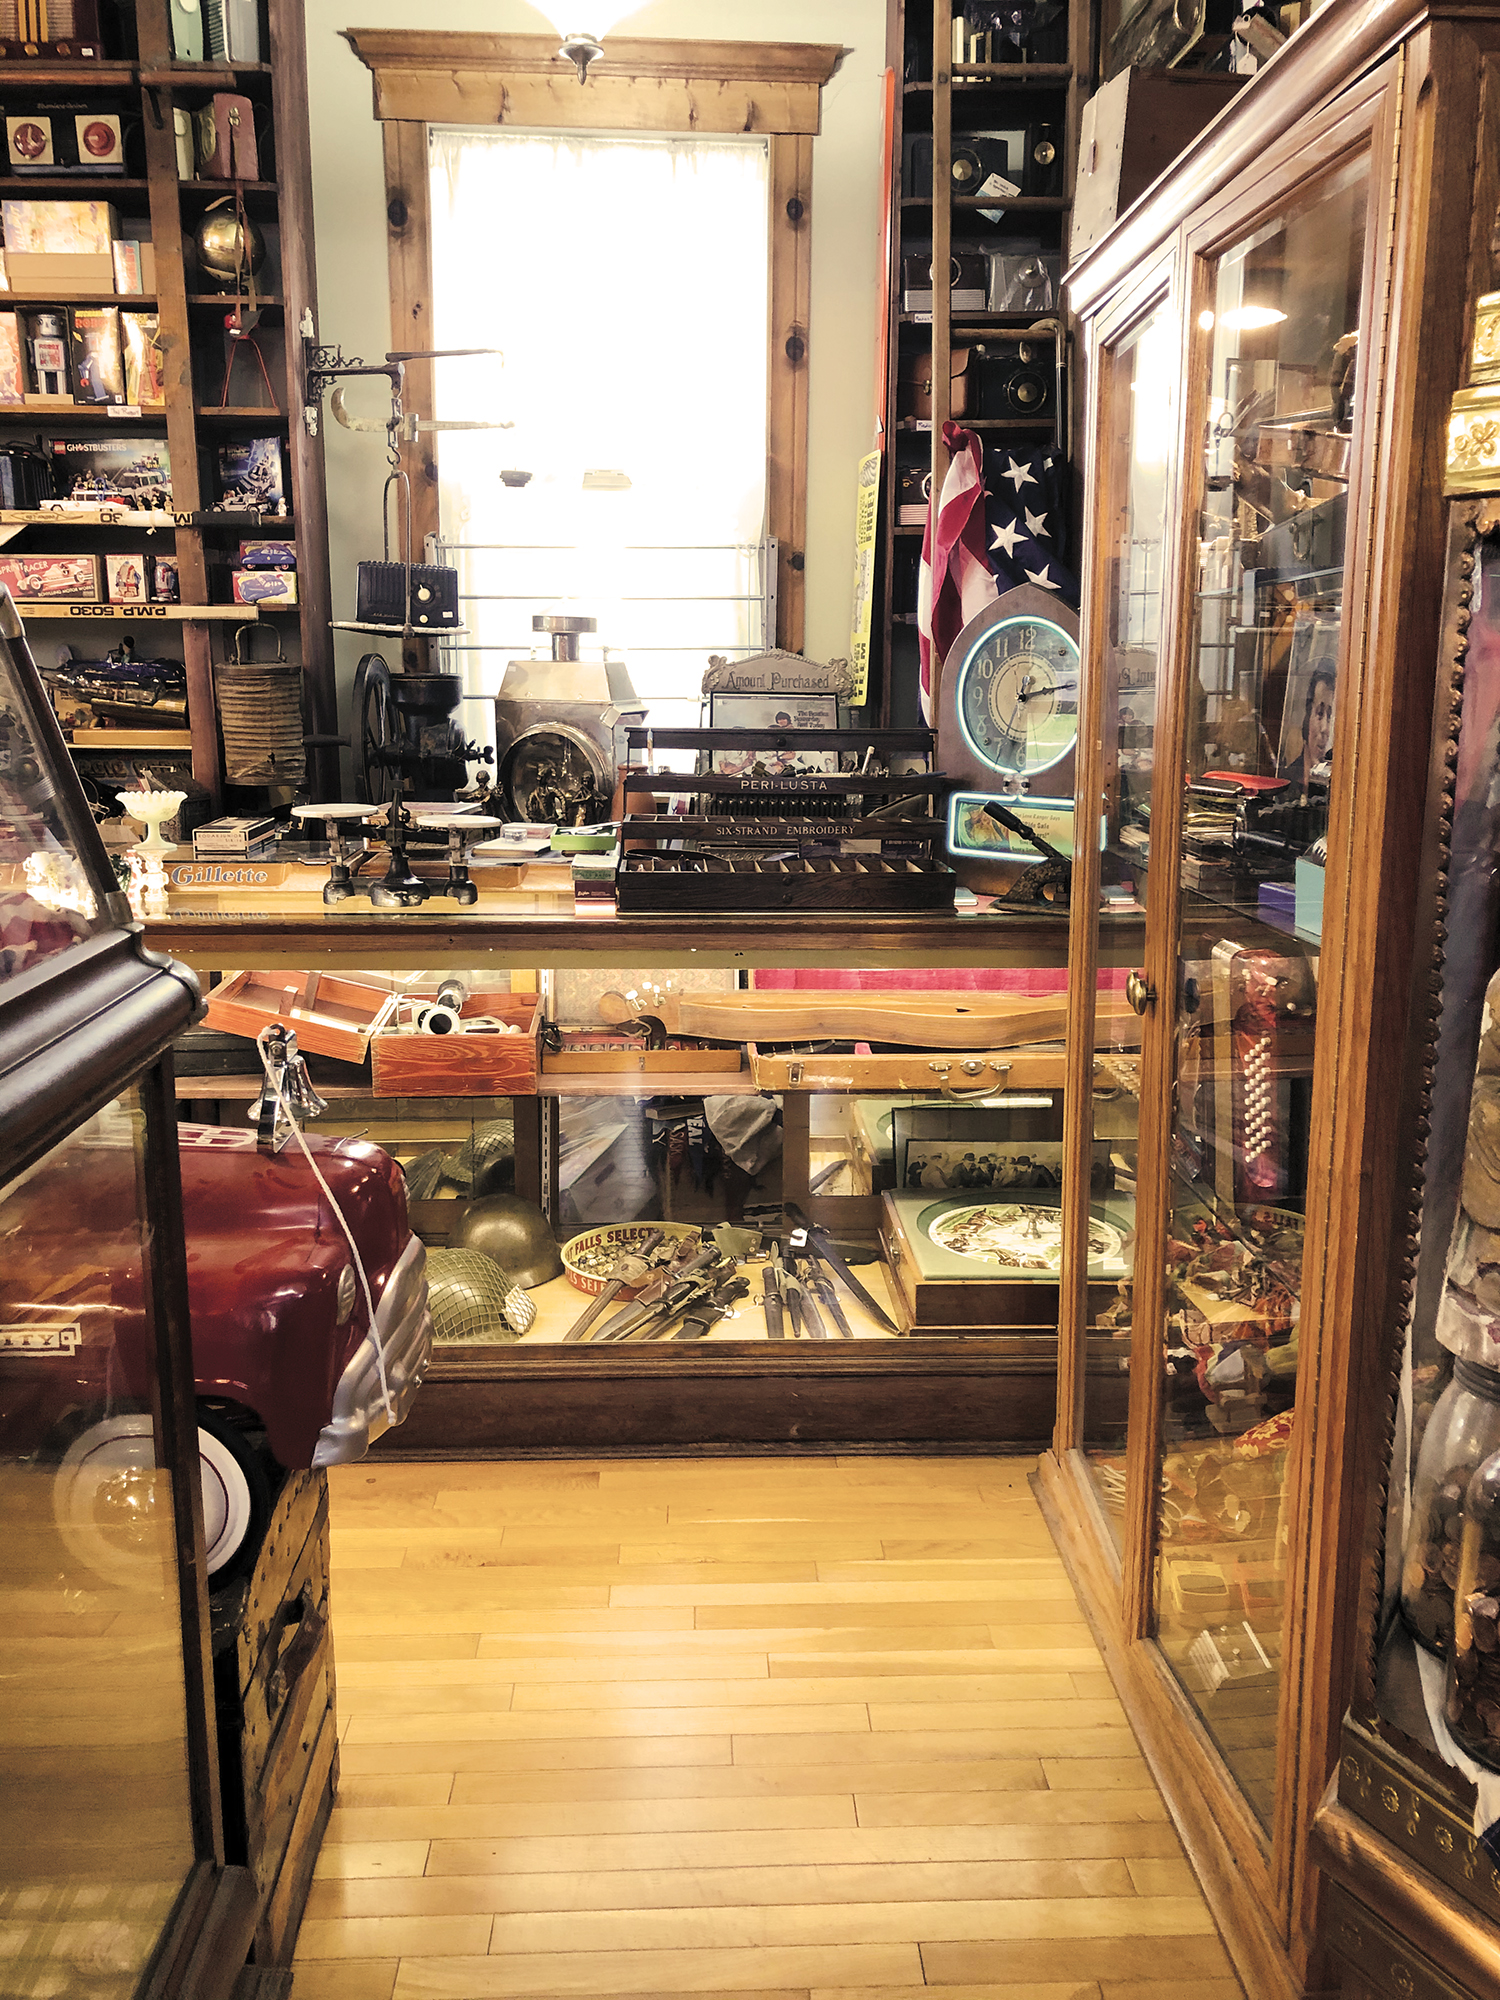 Antique store, wood floor, glass case and cabinet, wood framed window, front end of dark red model car.